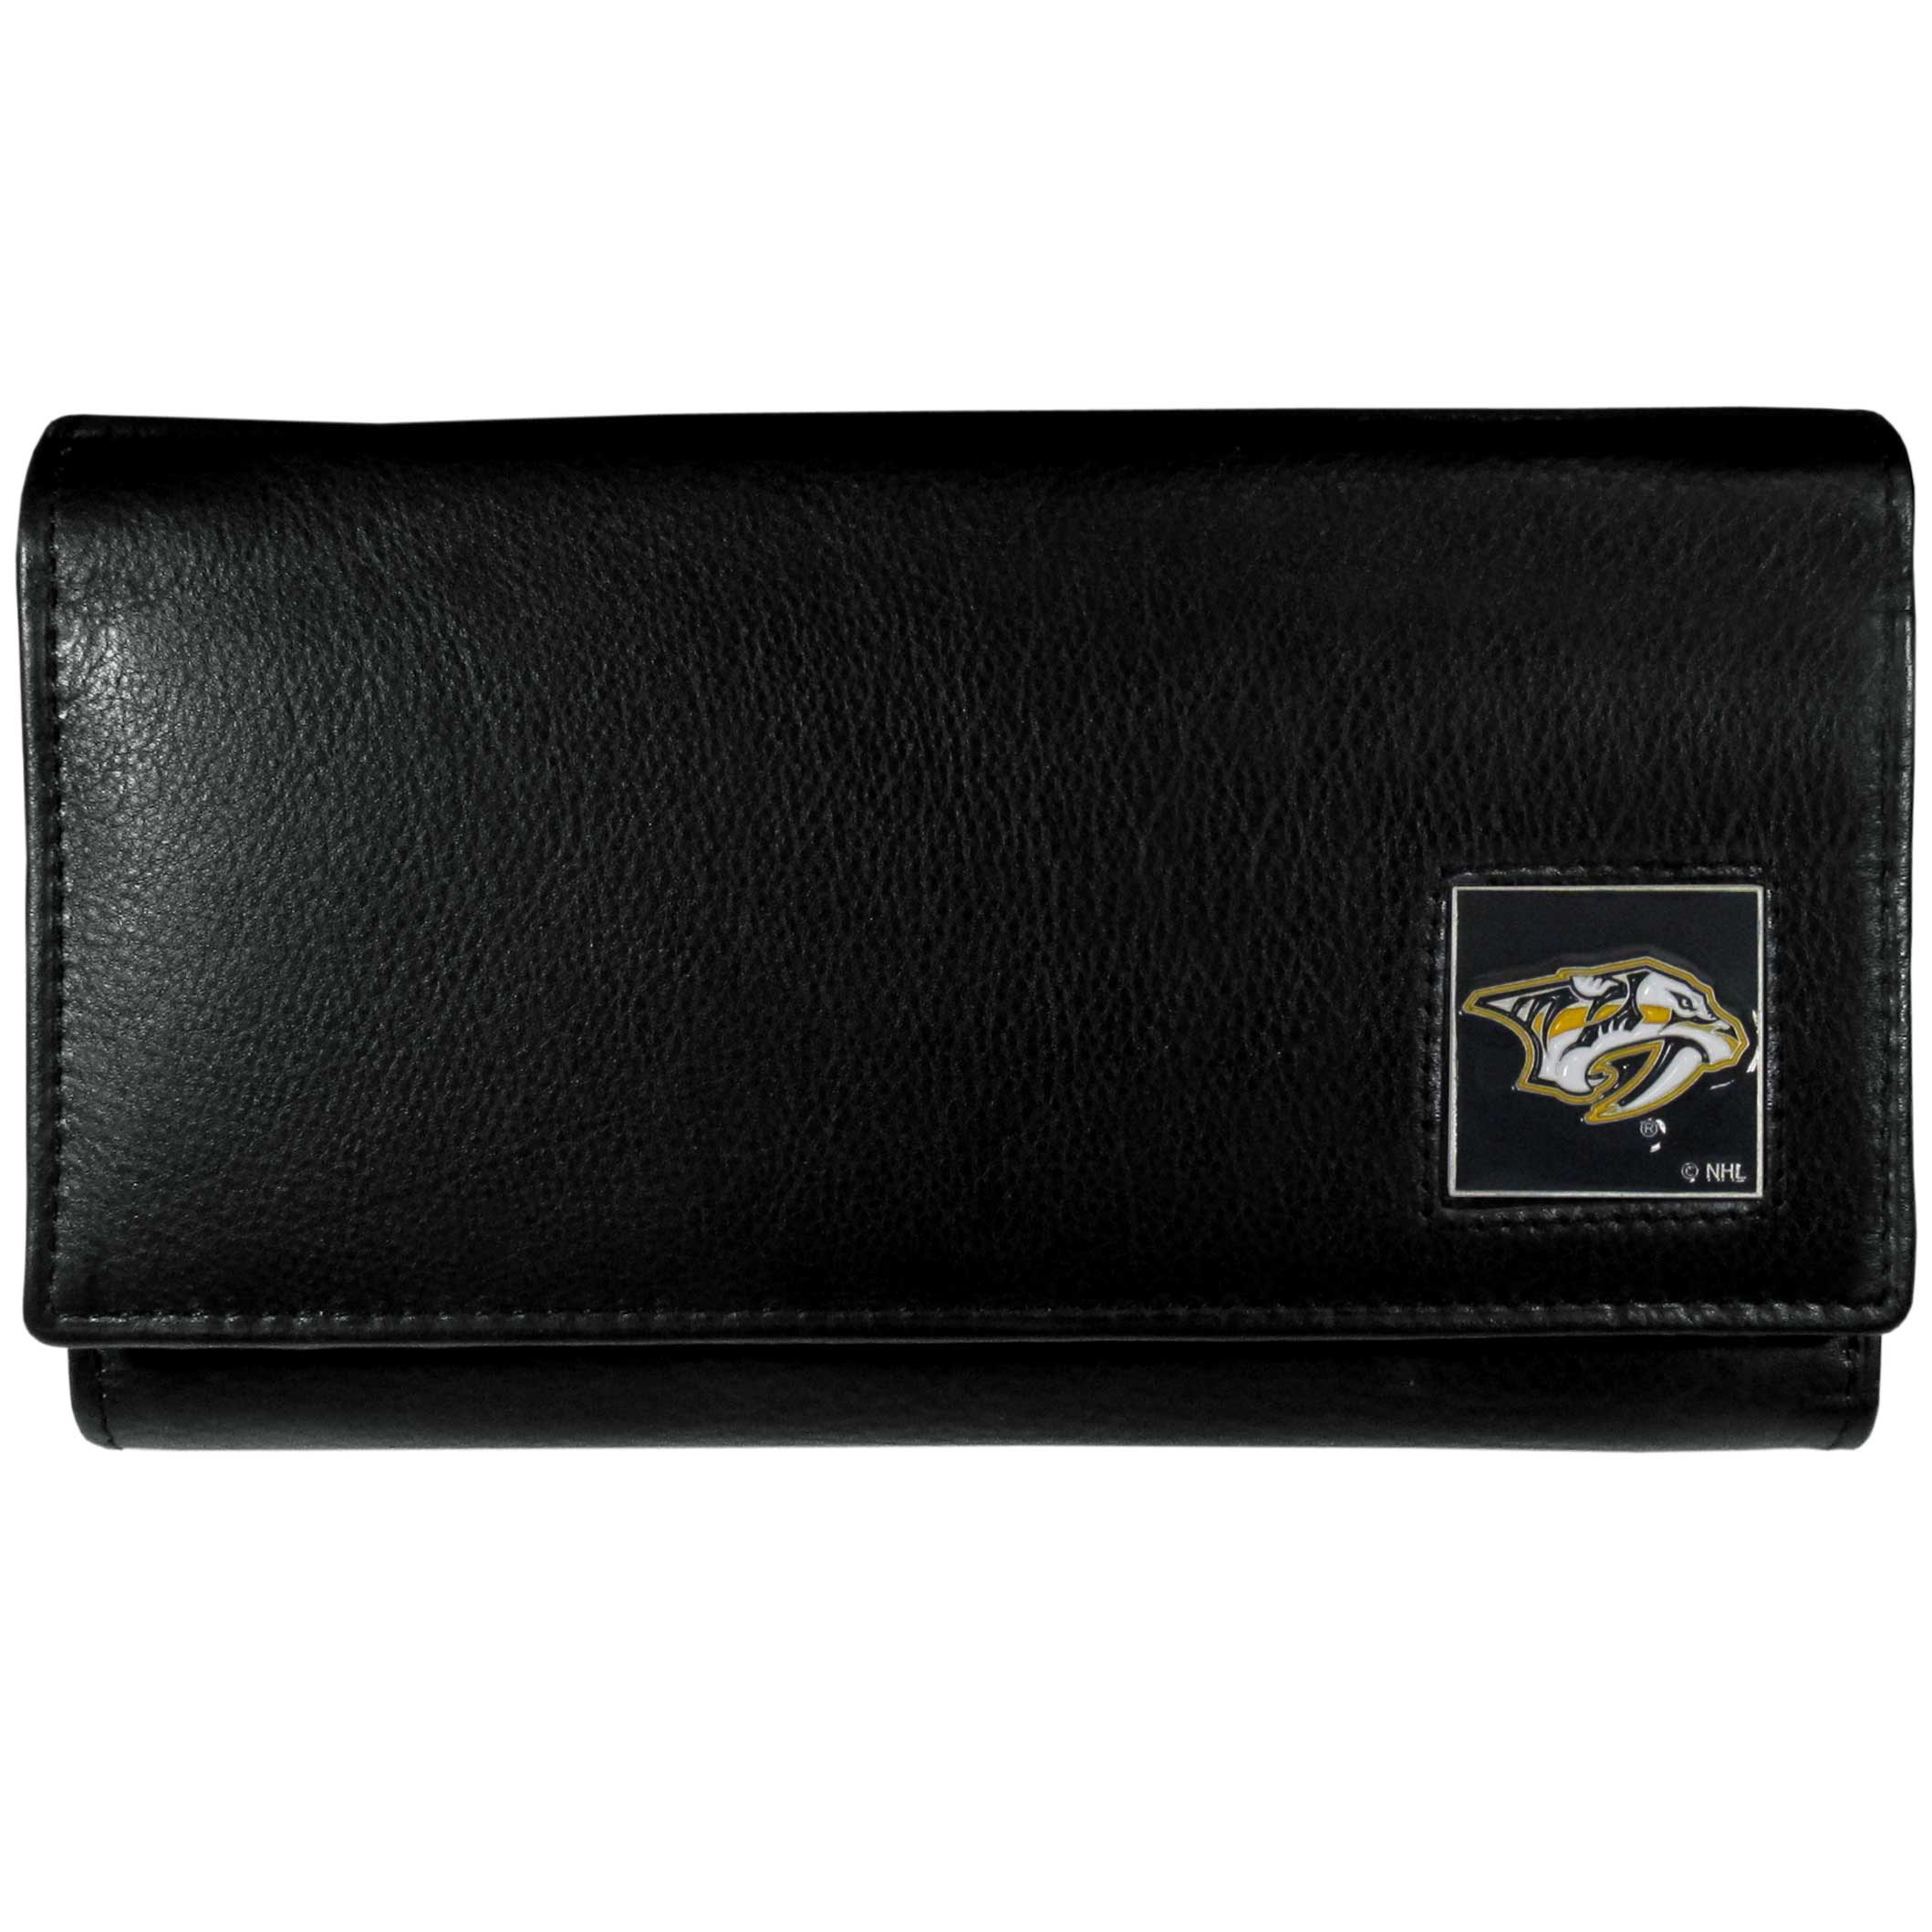 Nashville Predators® Leather Women's Wallet - This genuine leather women's pocketbook features 9 credit card slots, a windowed ID slot, spacious front pocket, inner pocket and zippered coin pocket. The front of the pocketbook has a hand painted metal square with the Nashville Predators® primary logo.